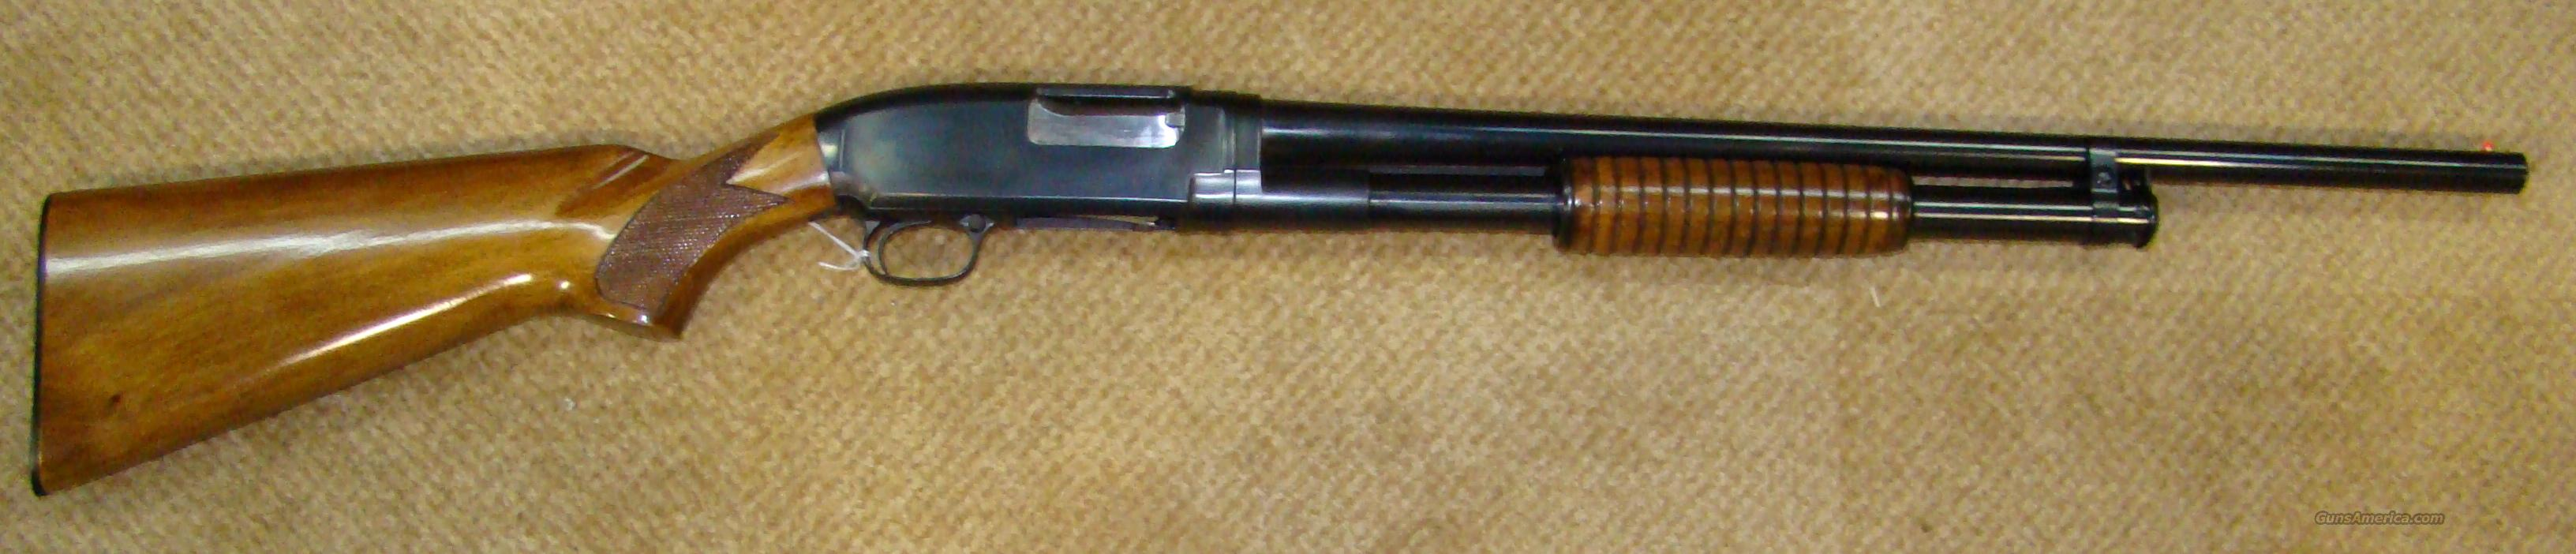 Winchester Model 12 16 gauge  Guns > Shotguns > Winchester Shotguns - Modern > Pump Action > Hunting